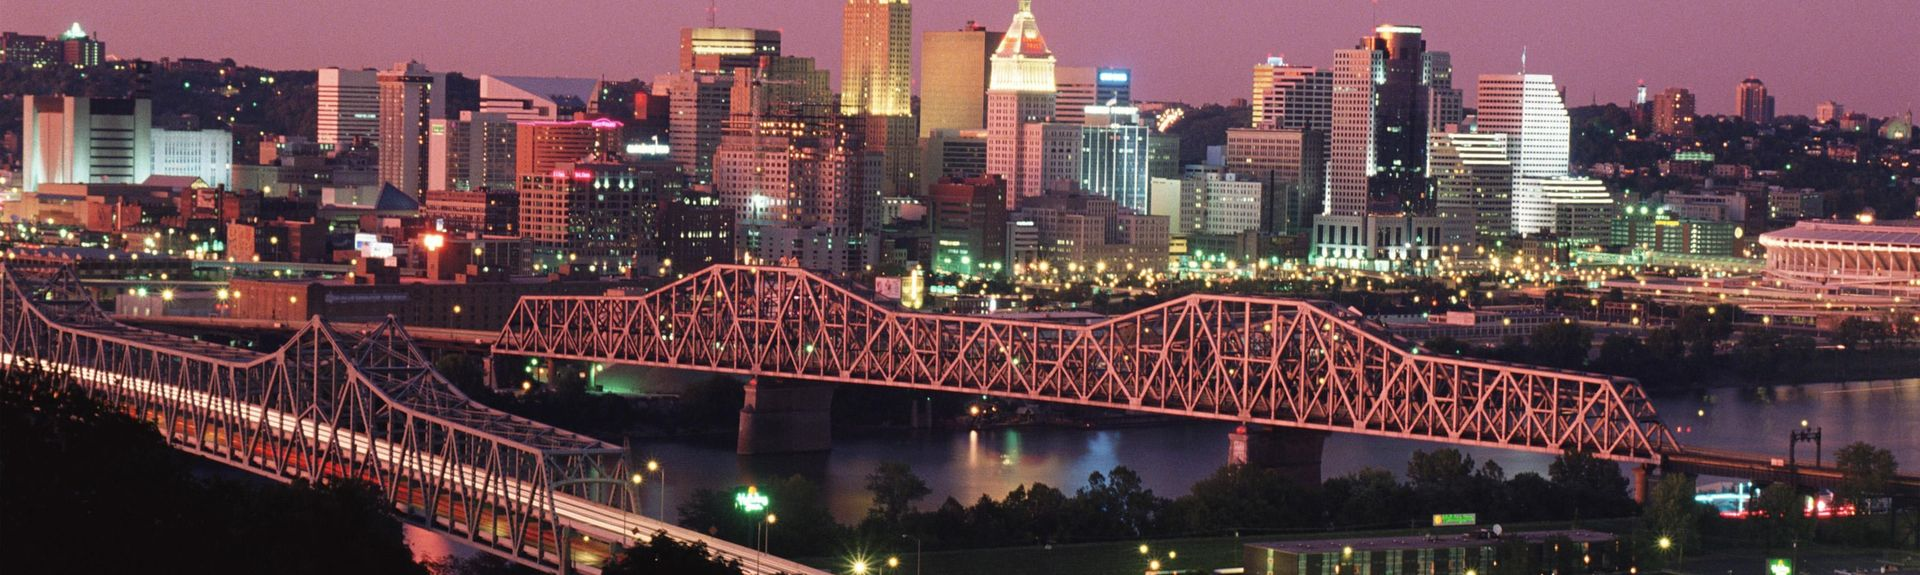 Covington, Kentucky, United States of America